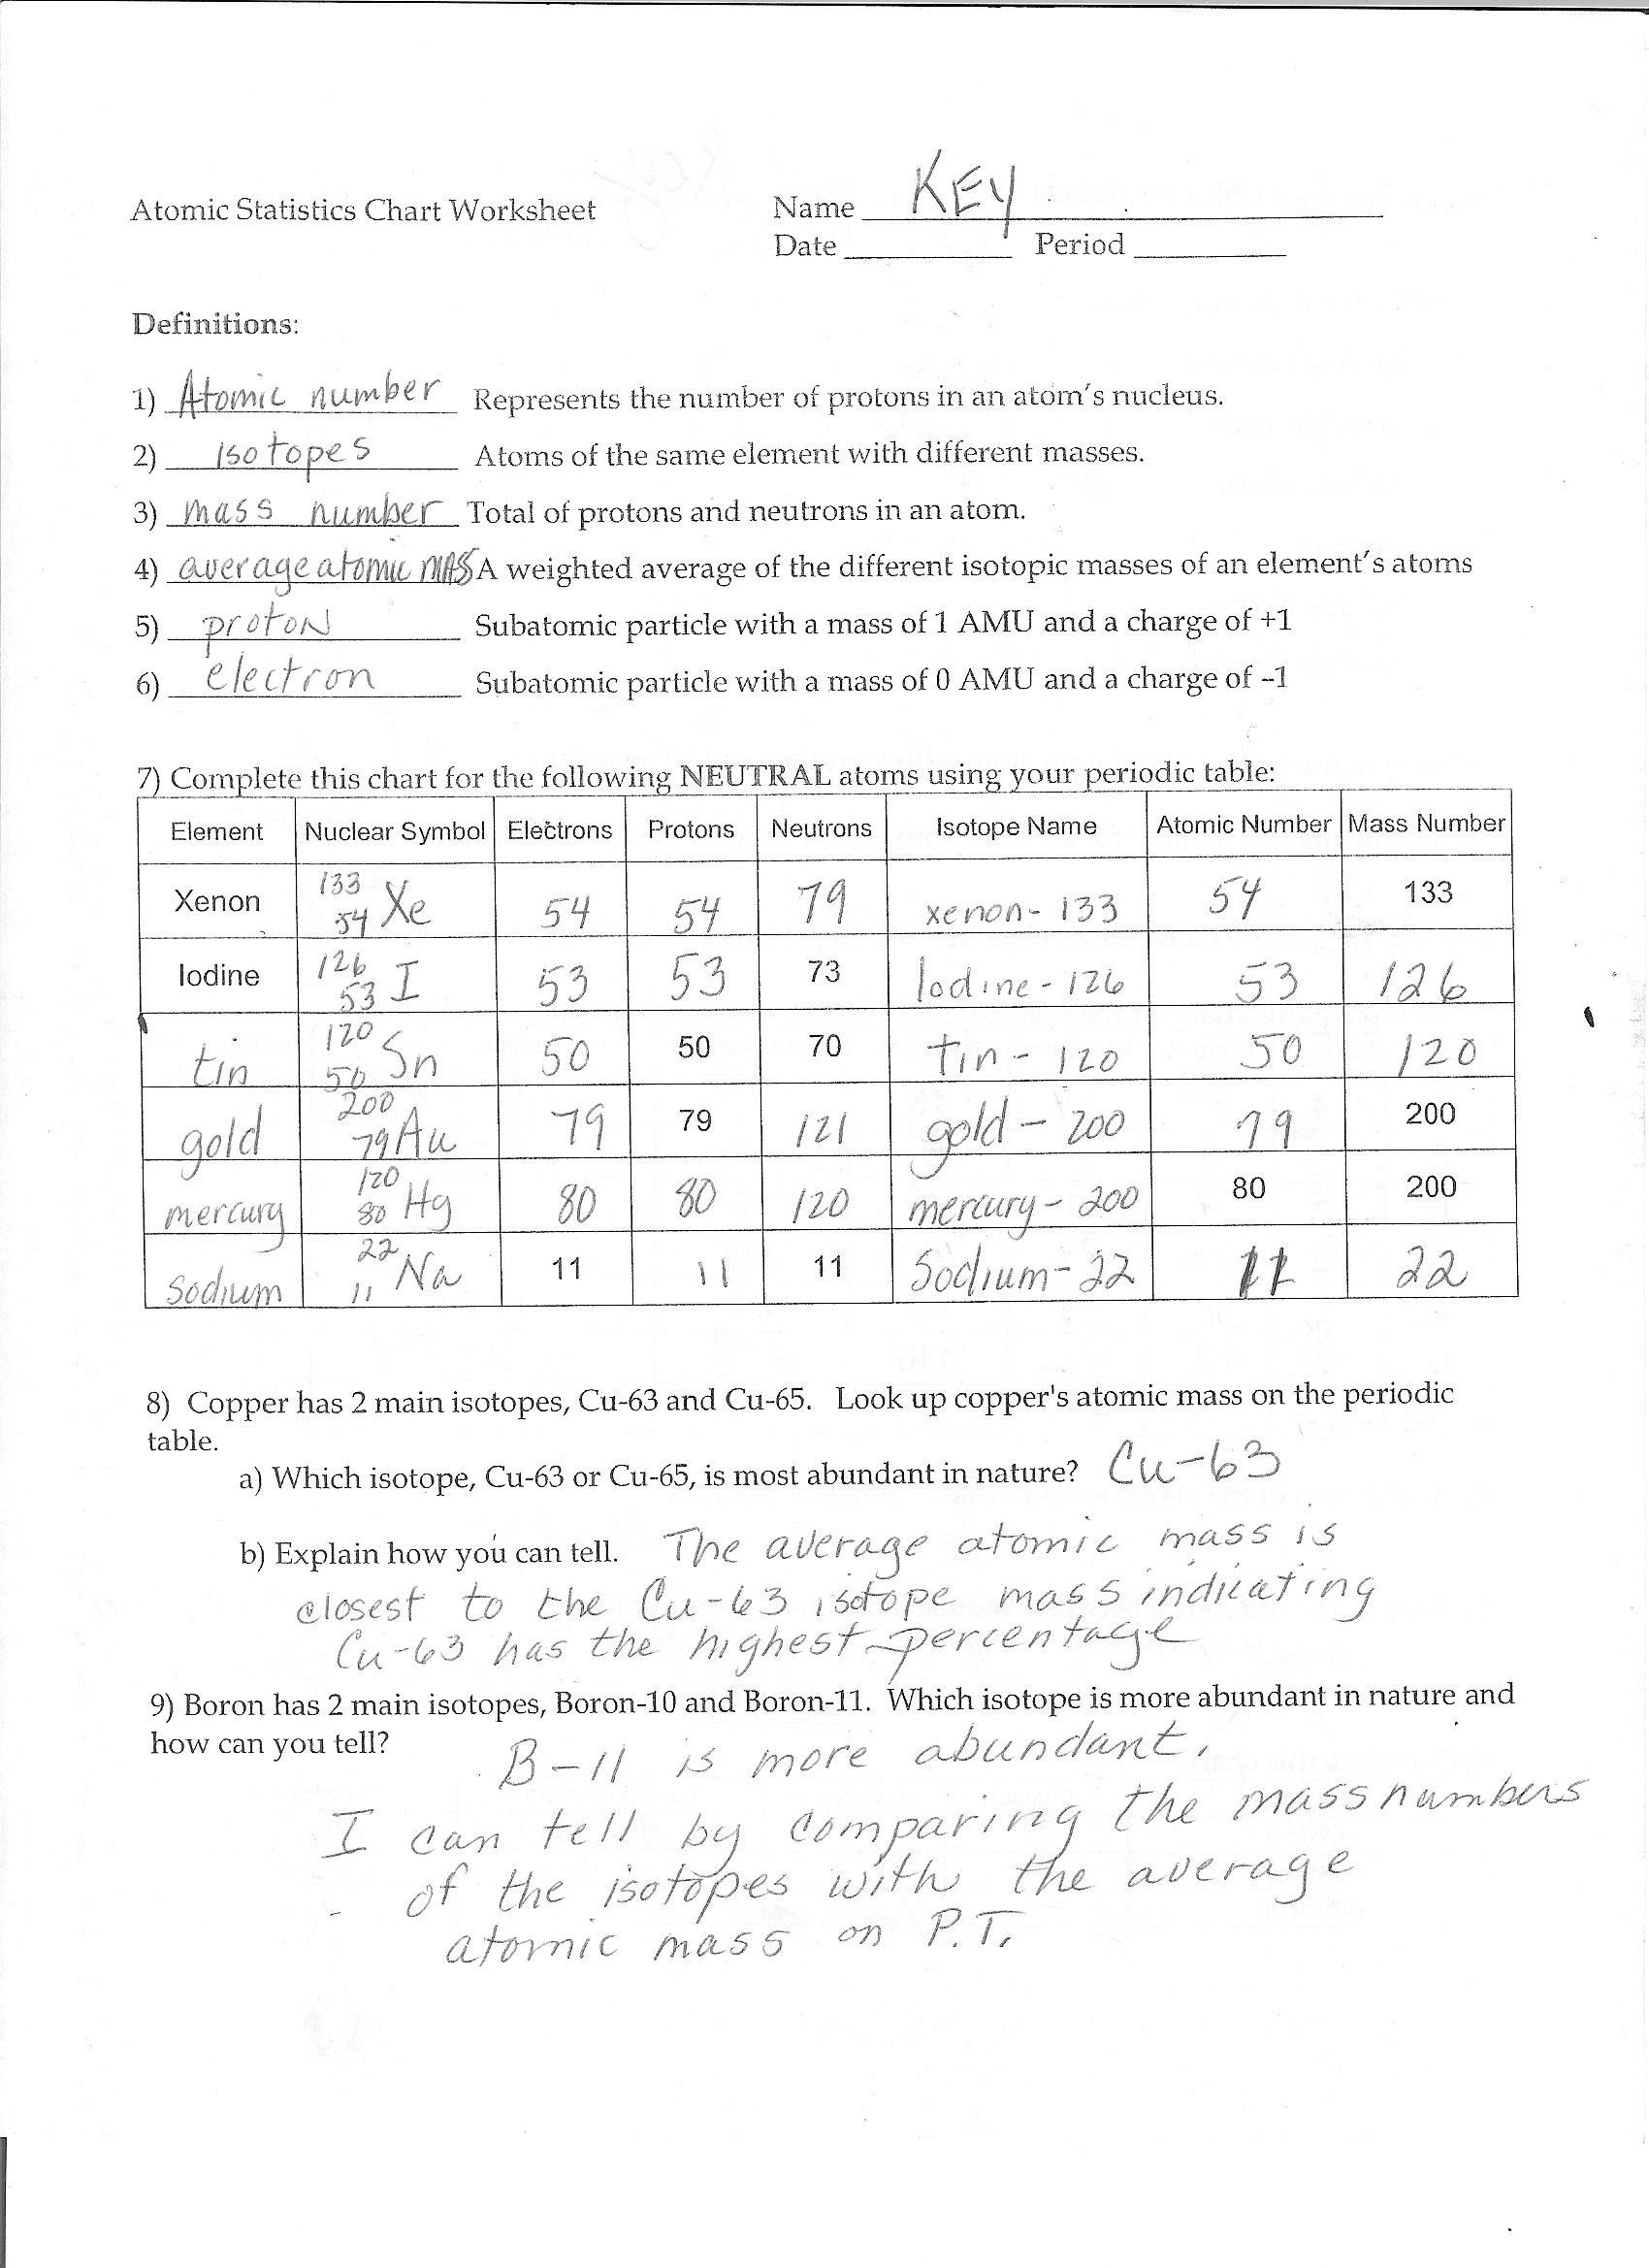 Atomic Structure Worksheet Answers Chemistry Worksheet